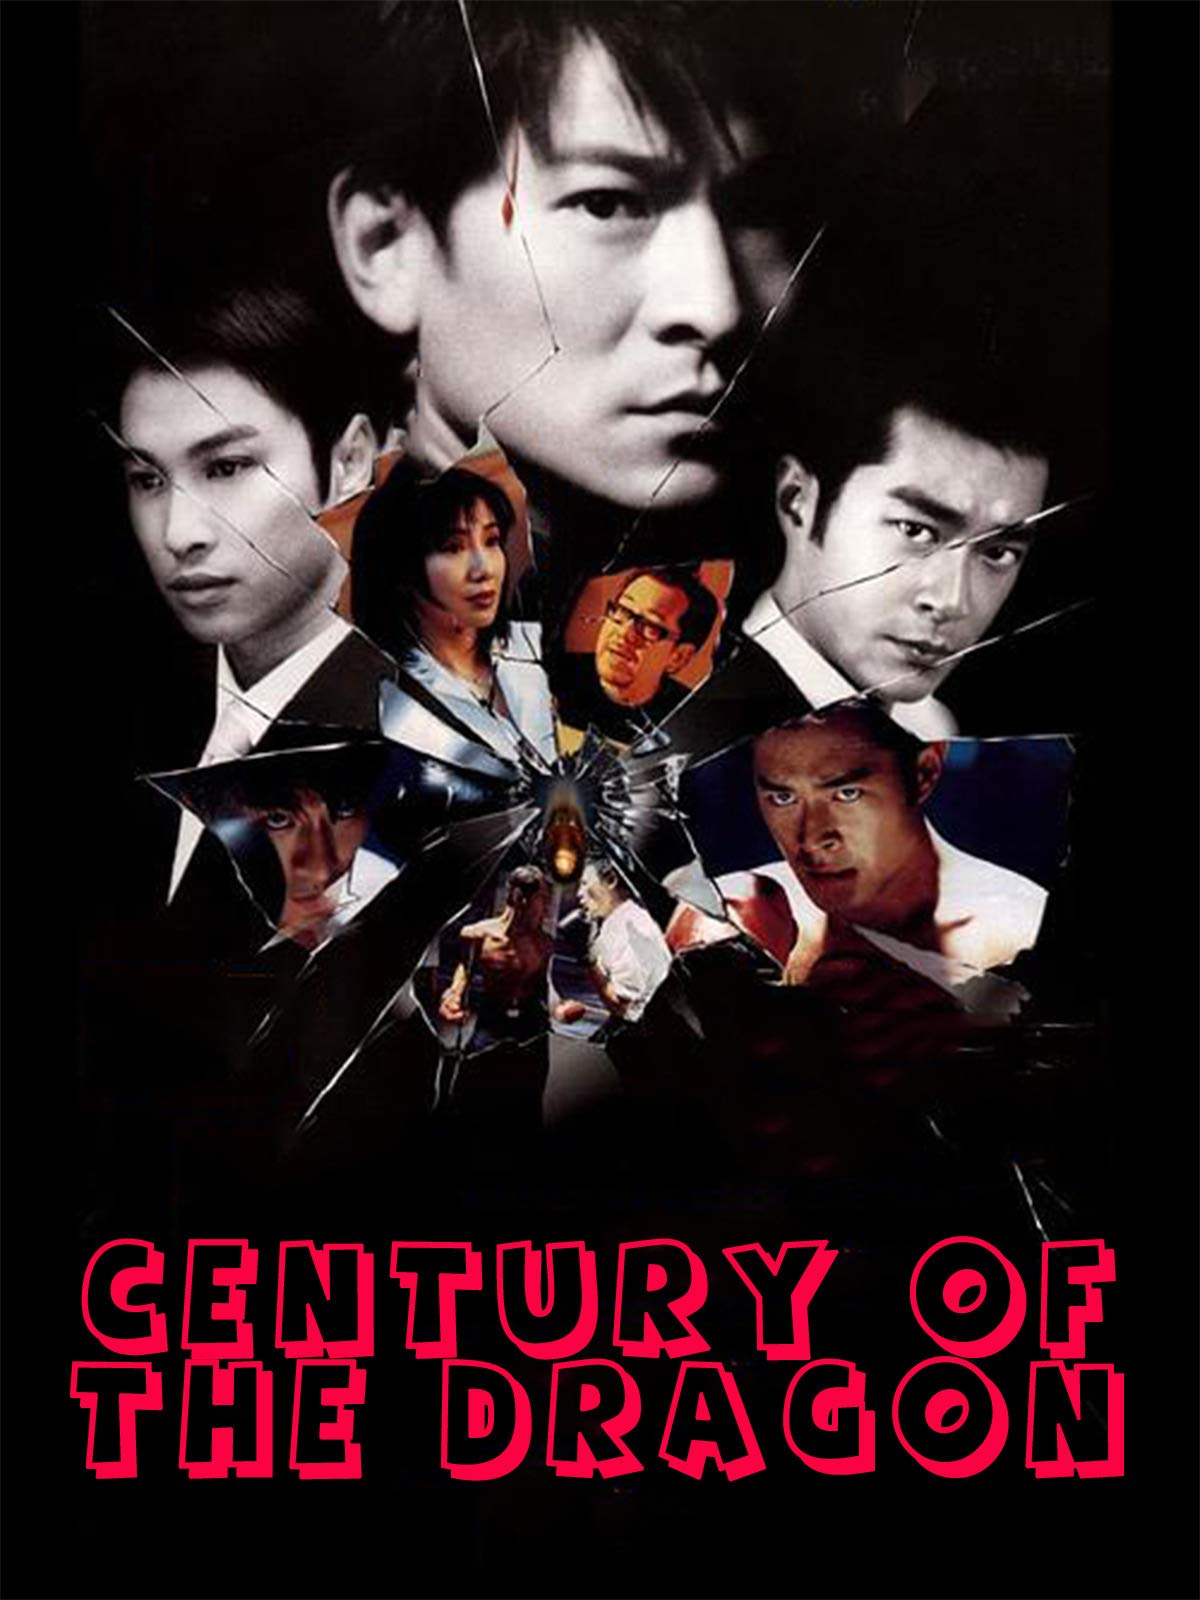 Century Of The Dragon